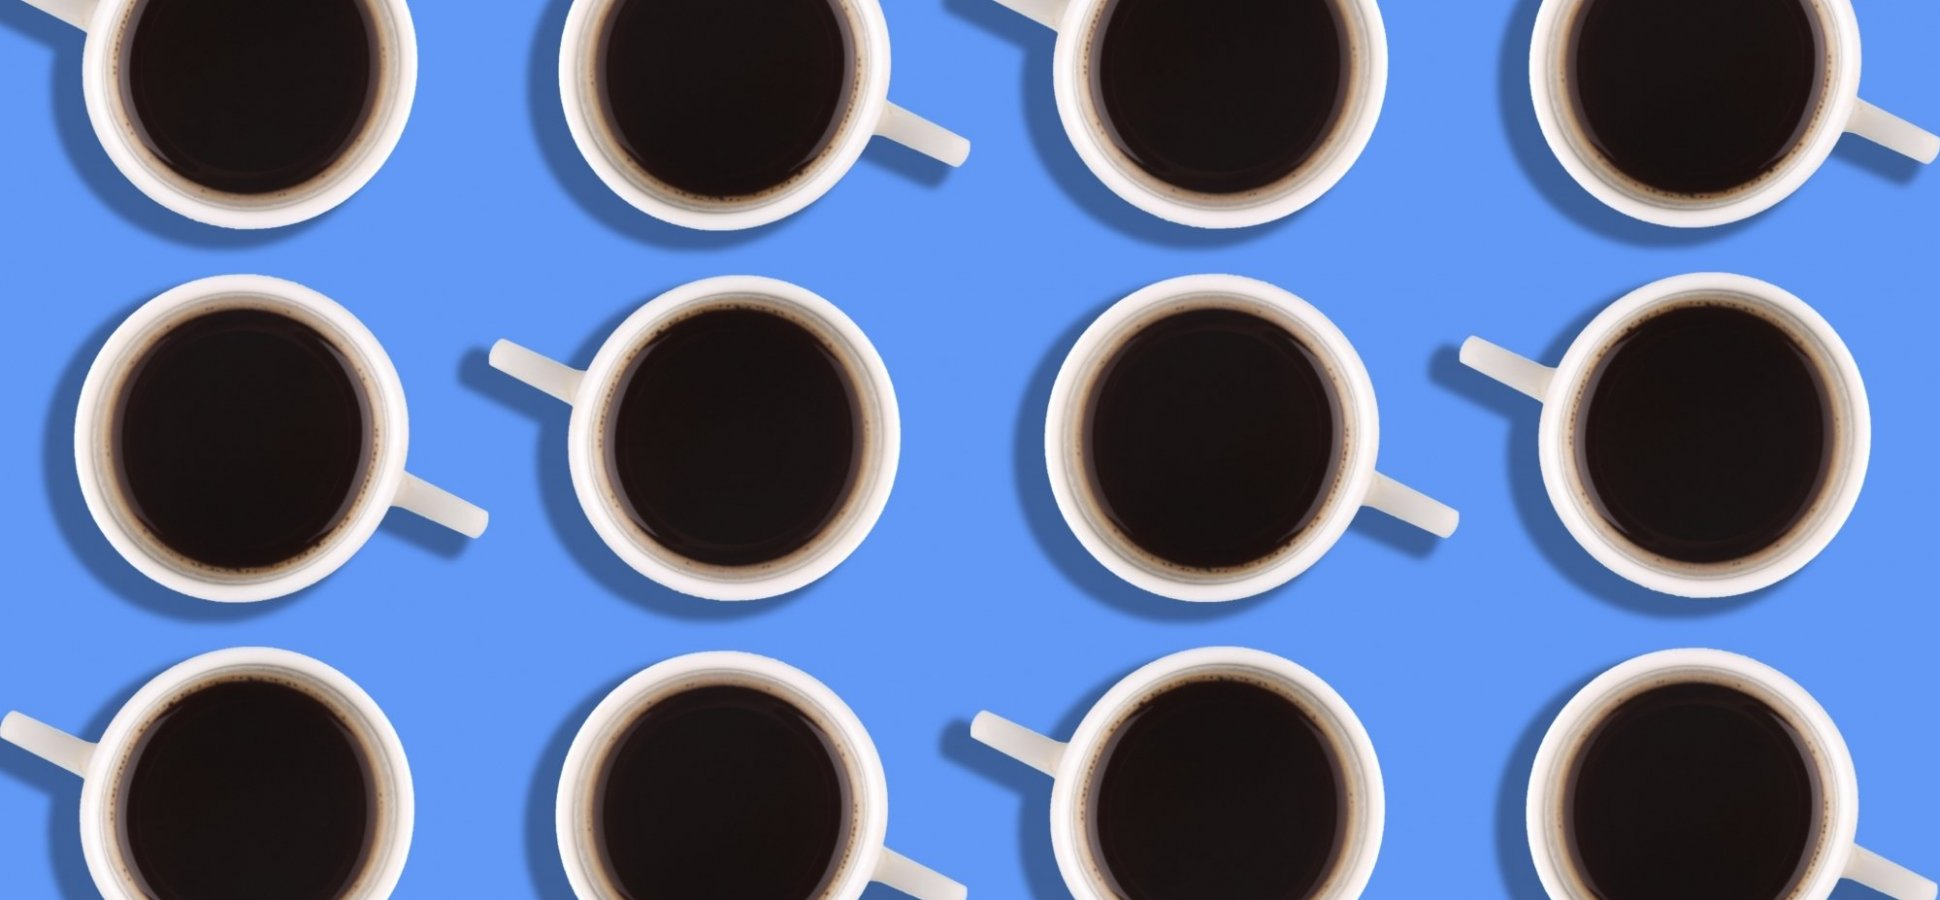 Drinking Coffee This Way Boosts Work Performance and Happiness, According to Science